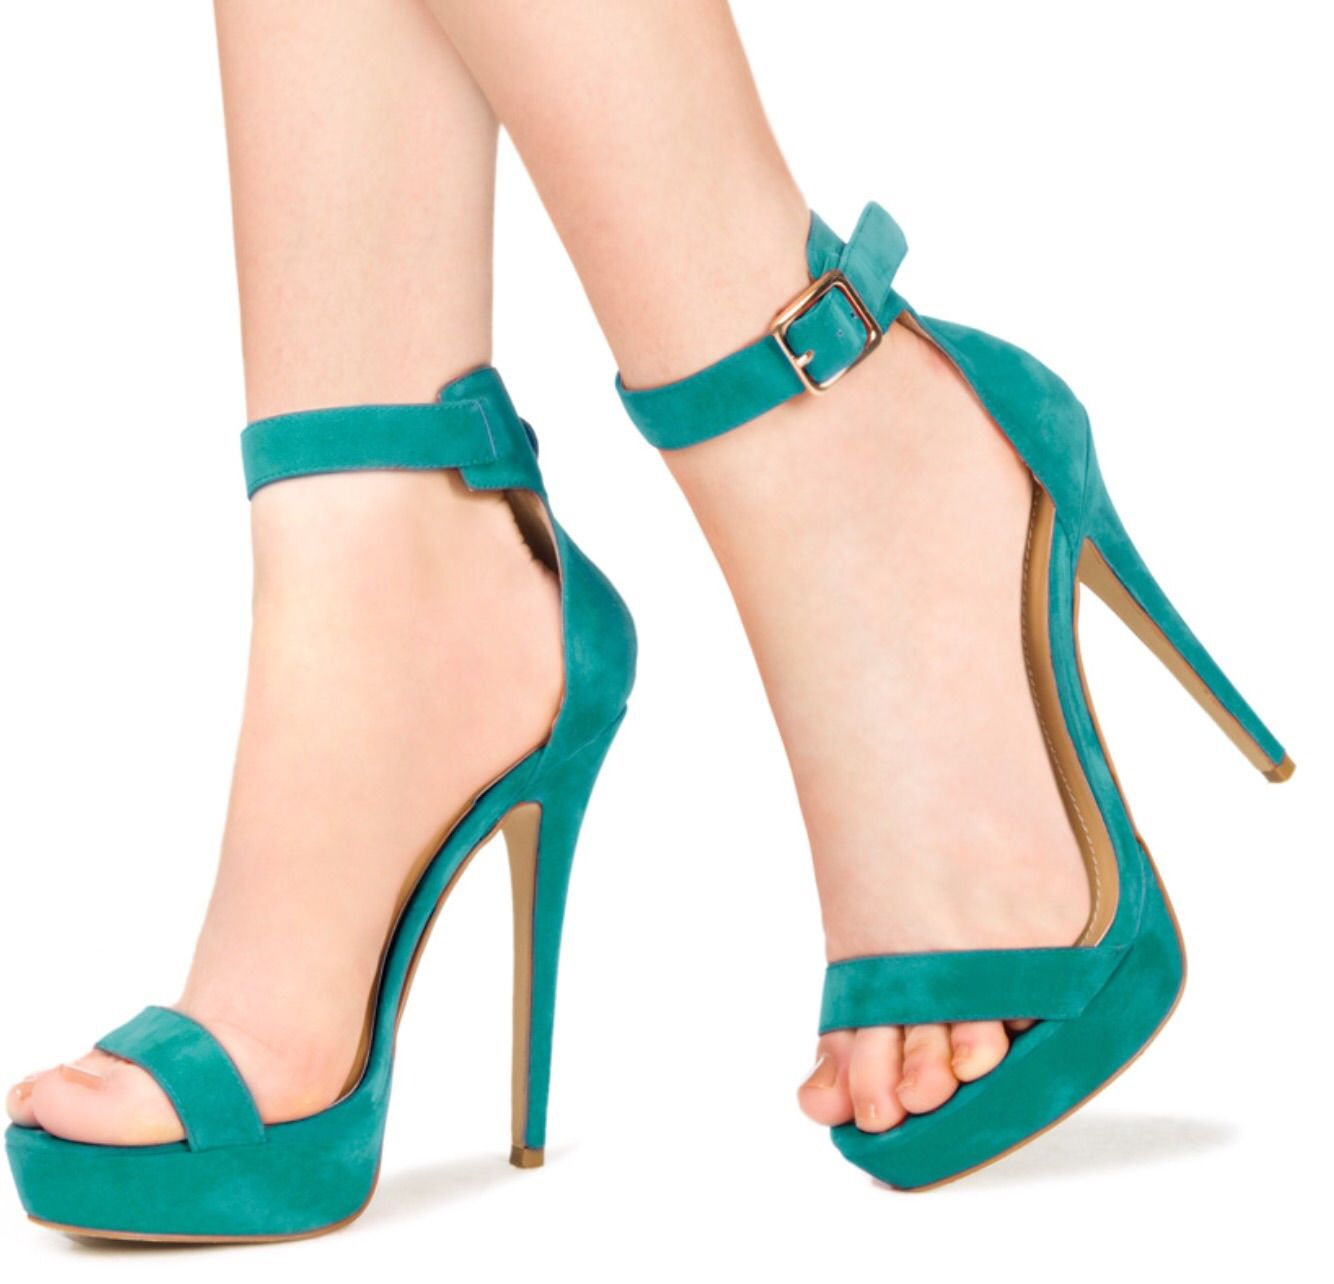 Green High Heels Pictures, Photos, and Images for Facebook, Tumblr ...